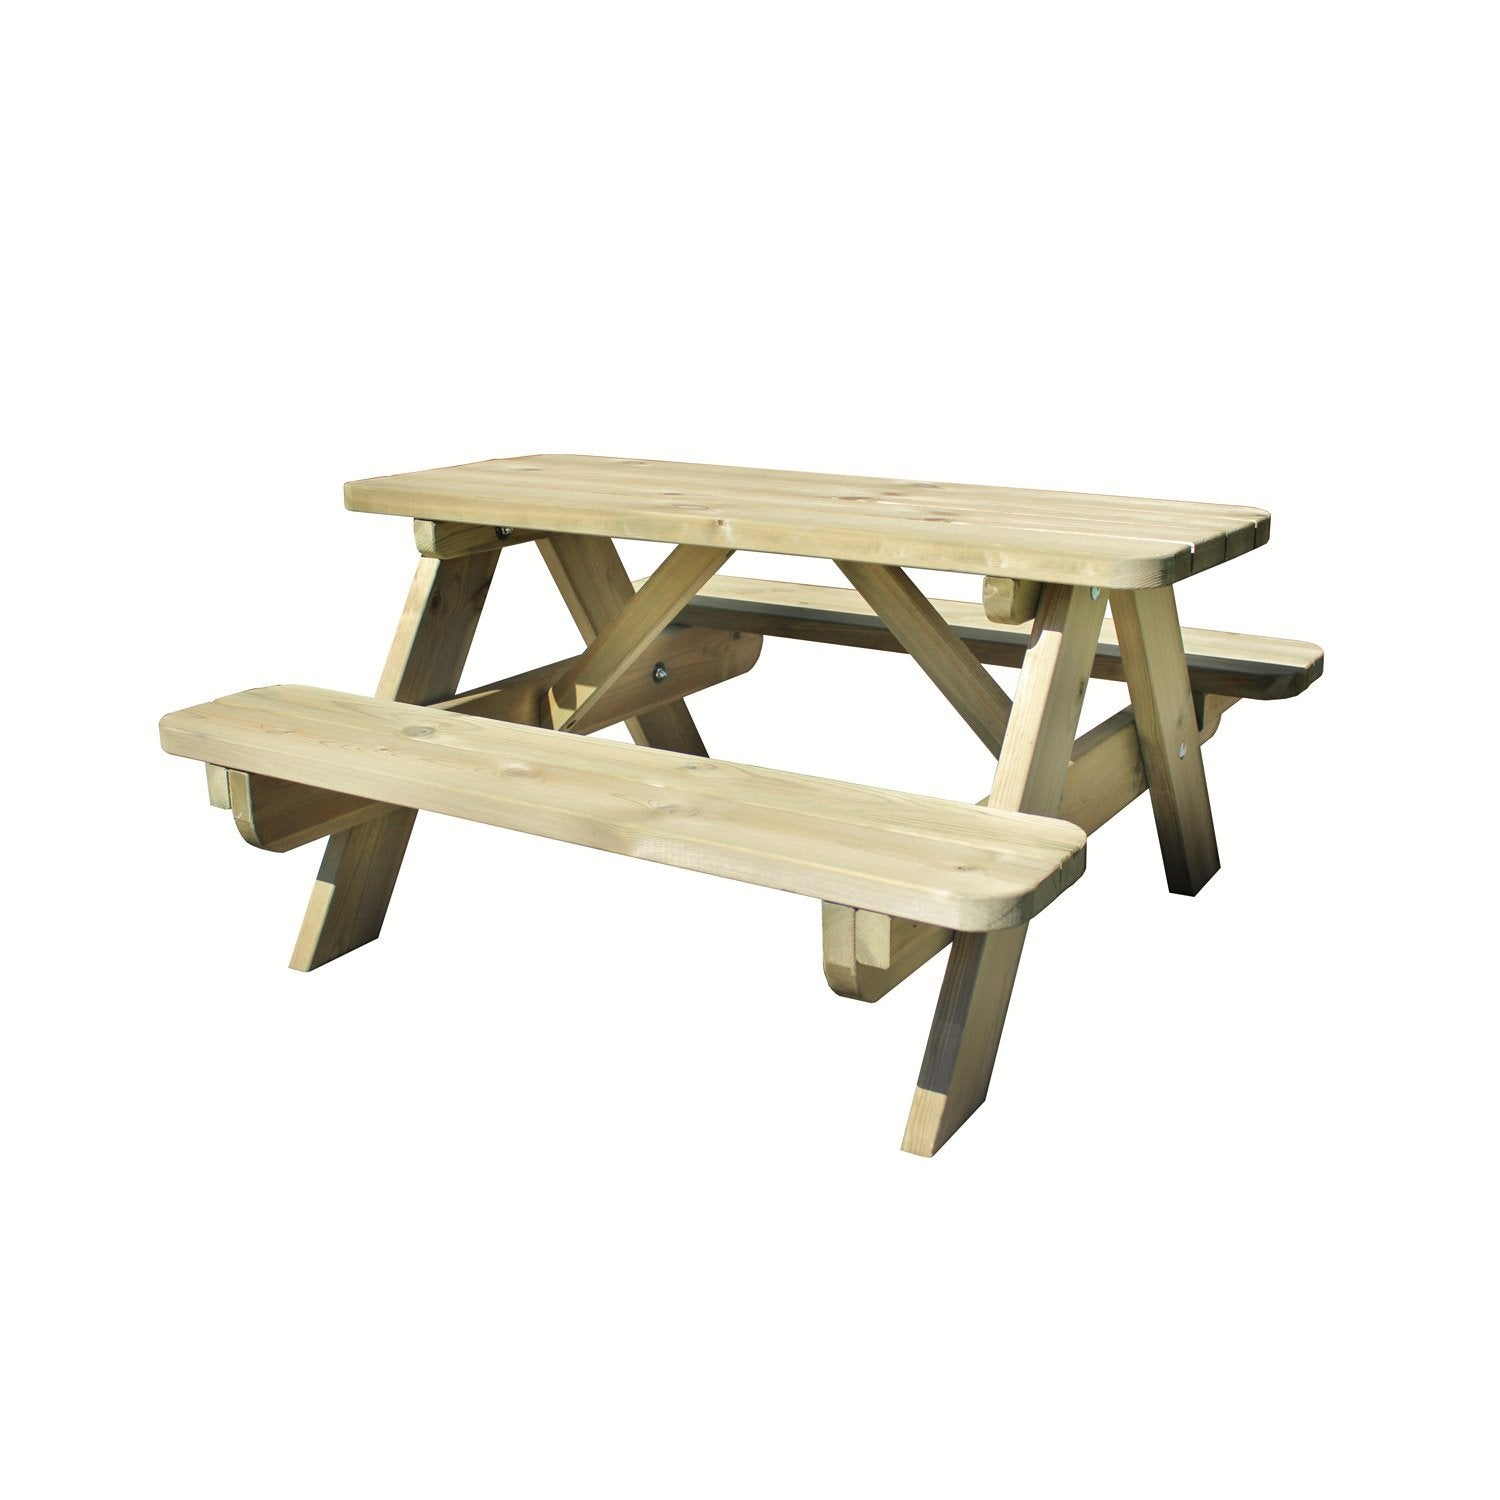 Plan table de jardin en bois maison design for Table bois jardin